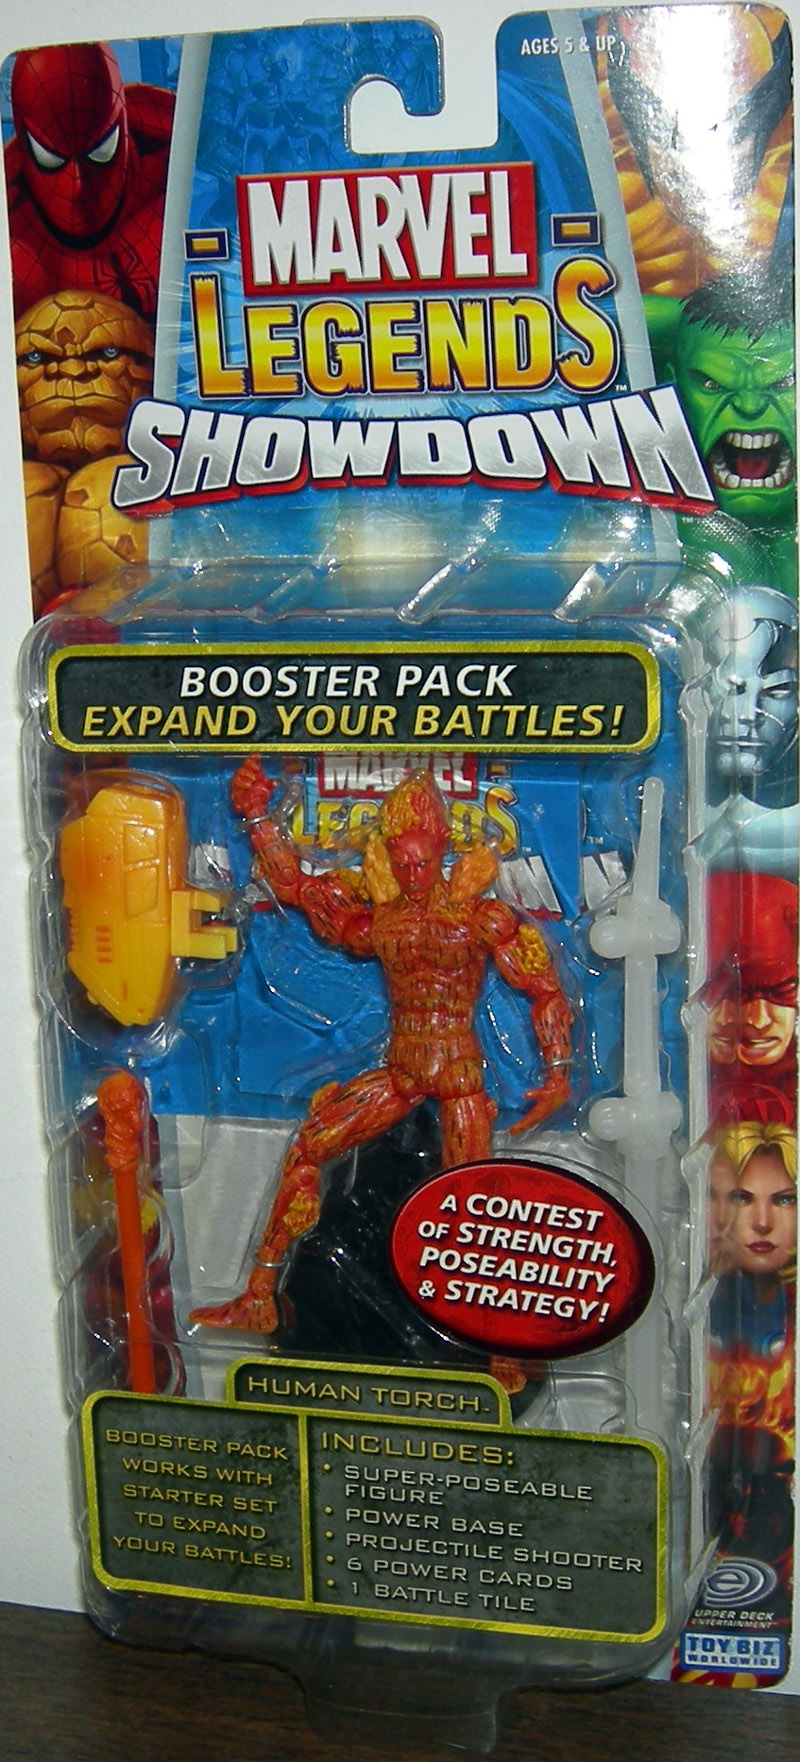 Human Torch (Marvel Legends Showdown)